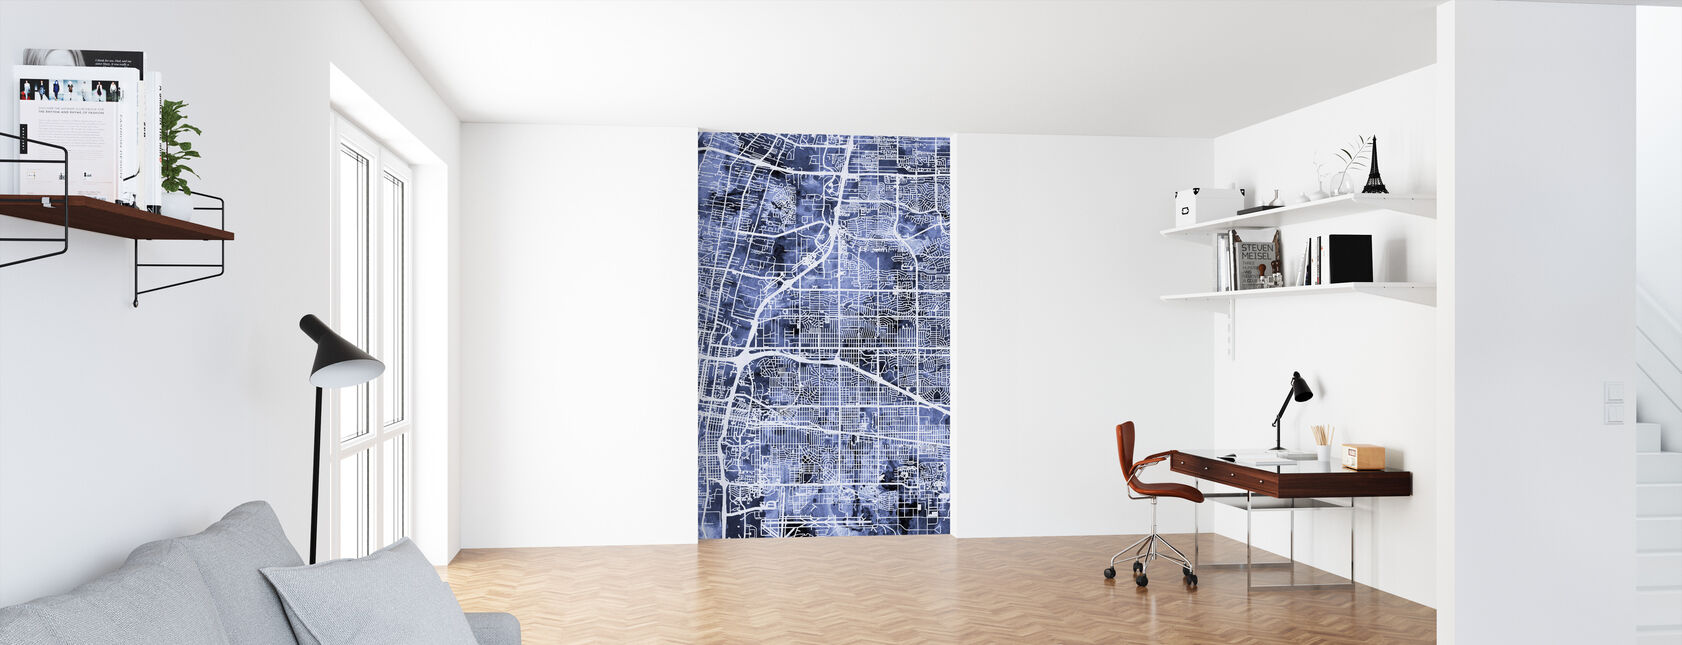 Albuquerque New Mexico City Street Map - Wallpaper - Office